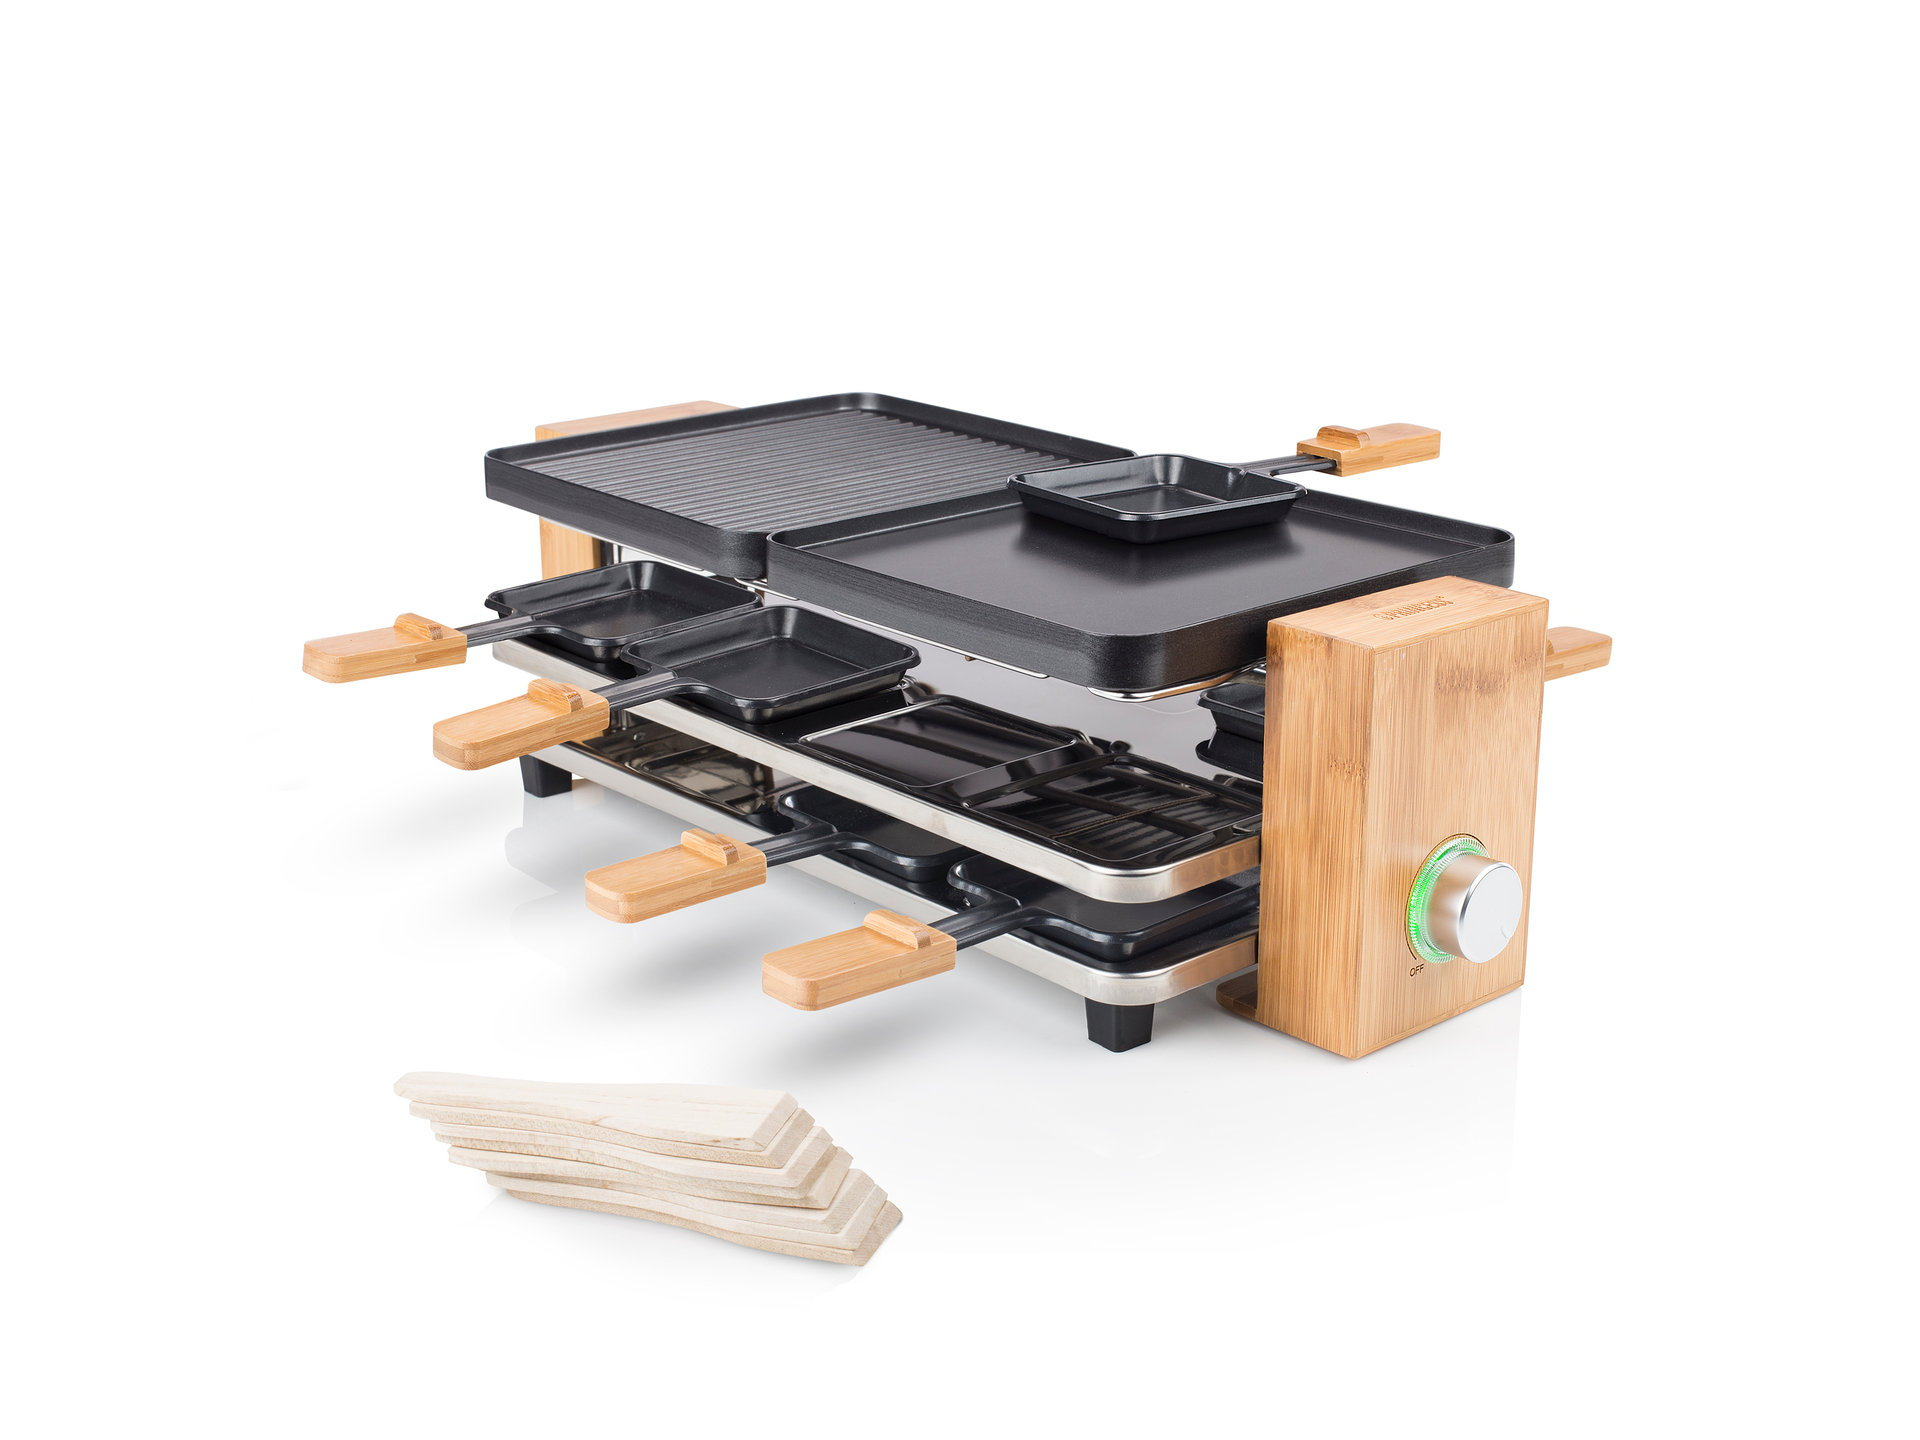 Princess 01.162910.01.001 Raclette Pure 8 Bamboo housing